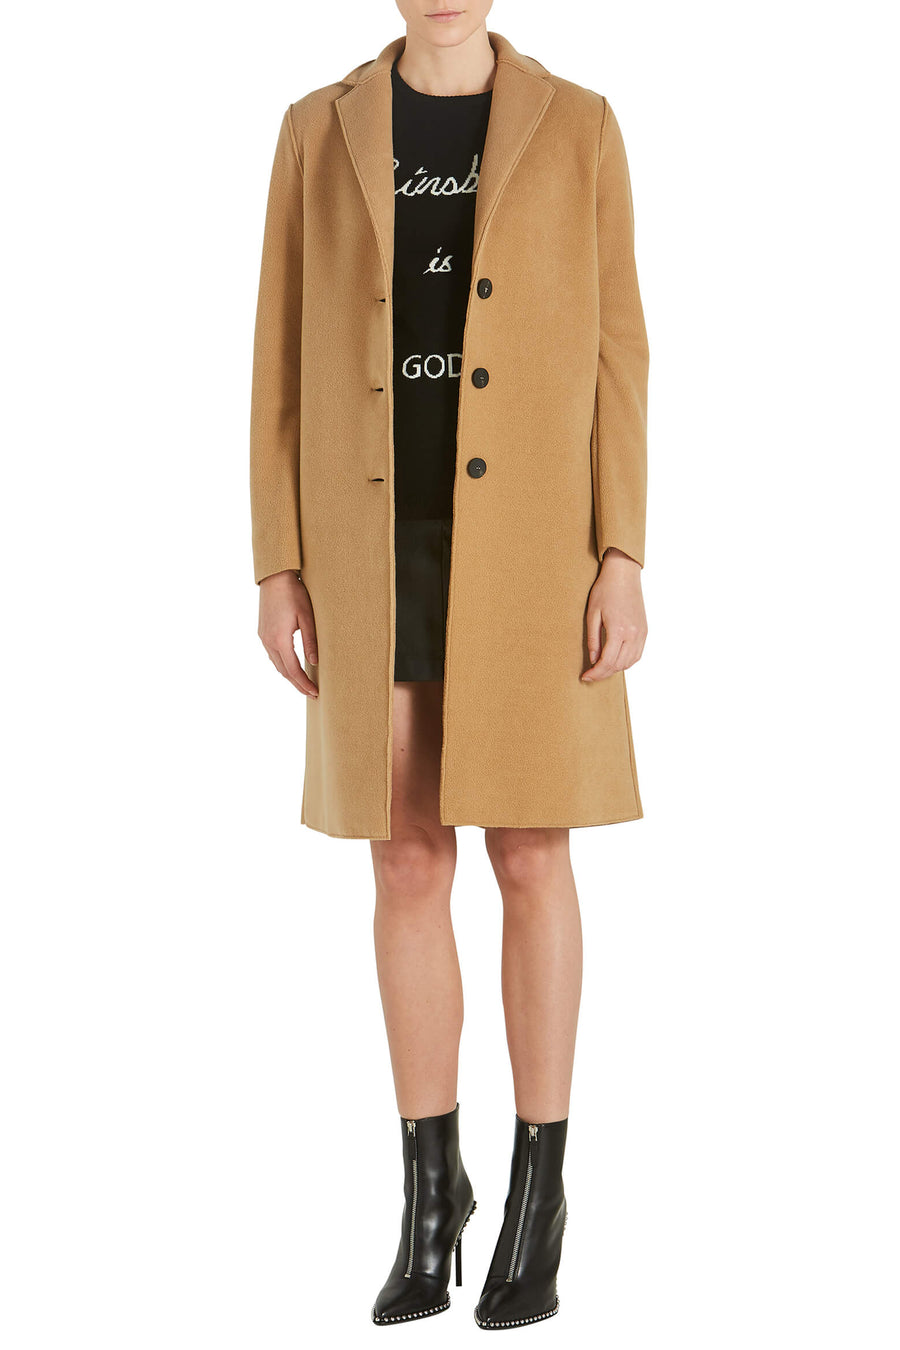 Harris Wharf London Women Overcoat Polaire from The New Trend